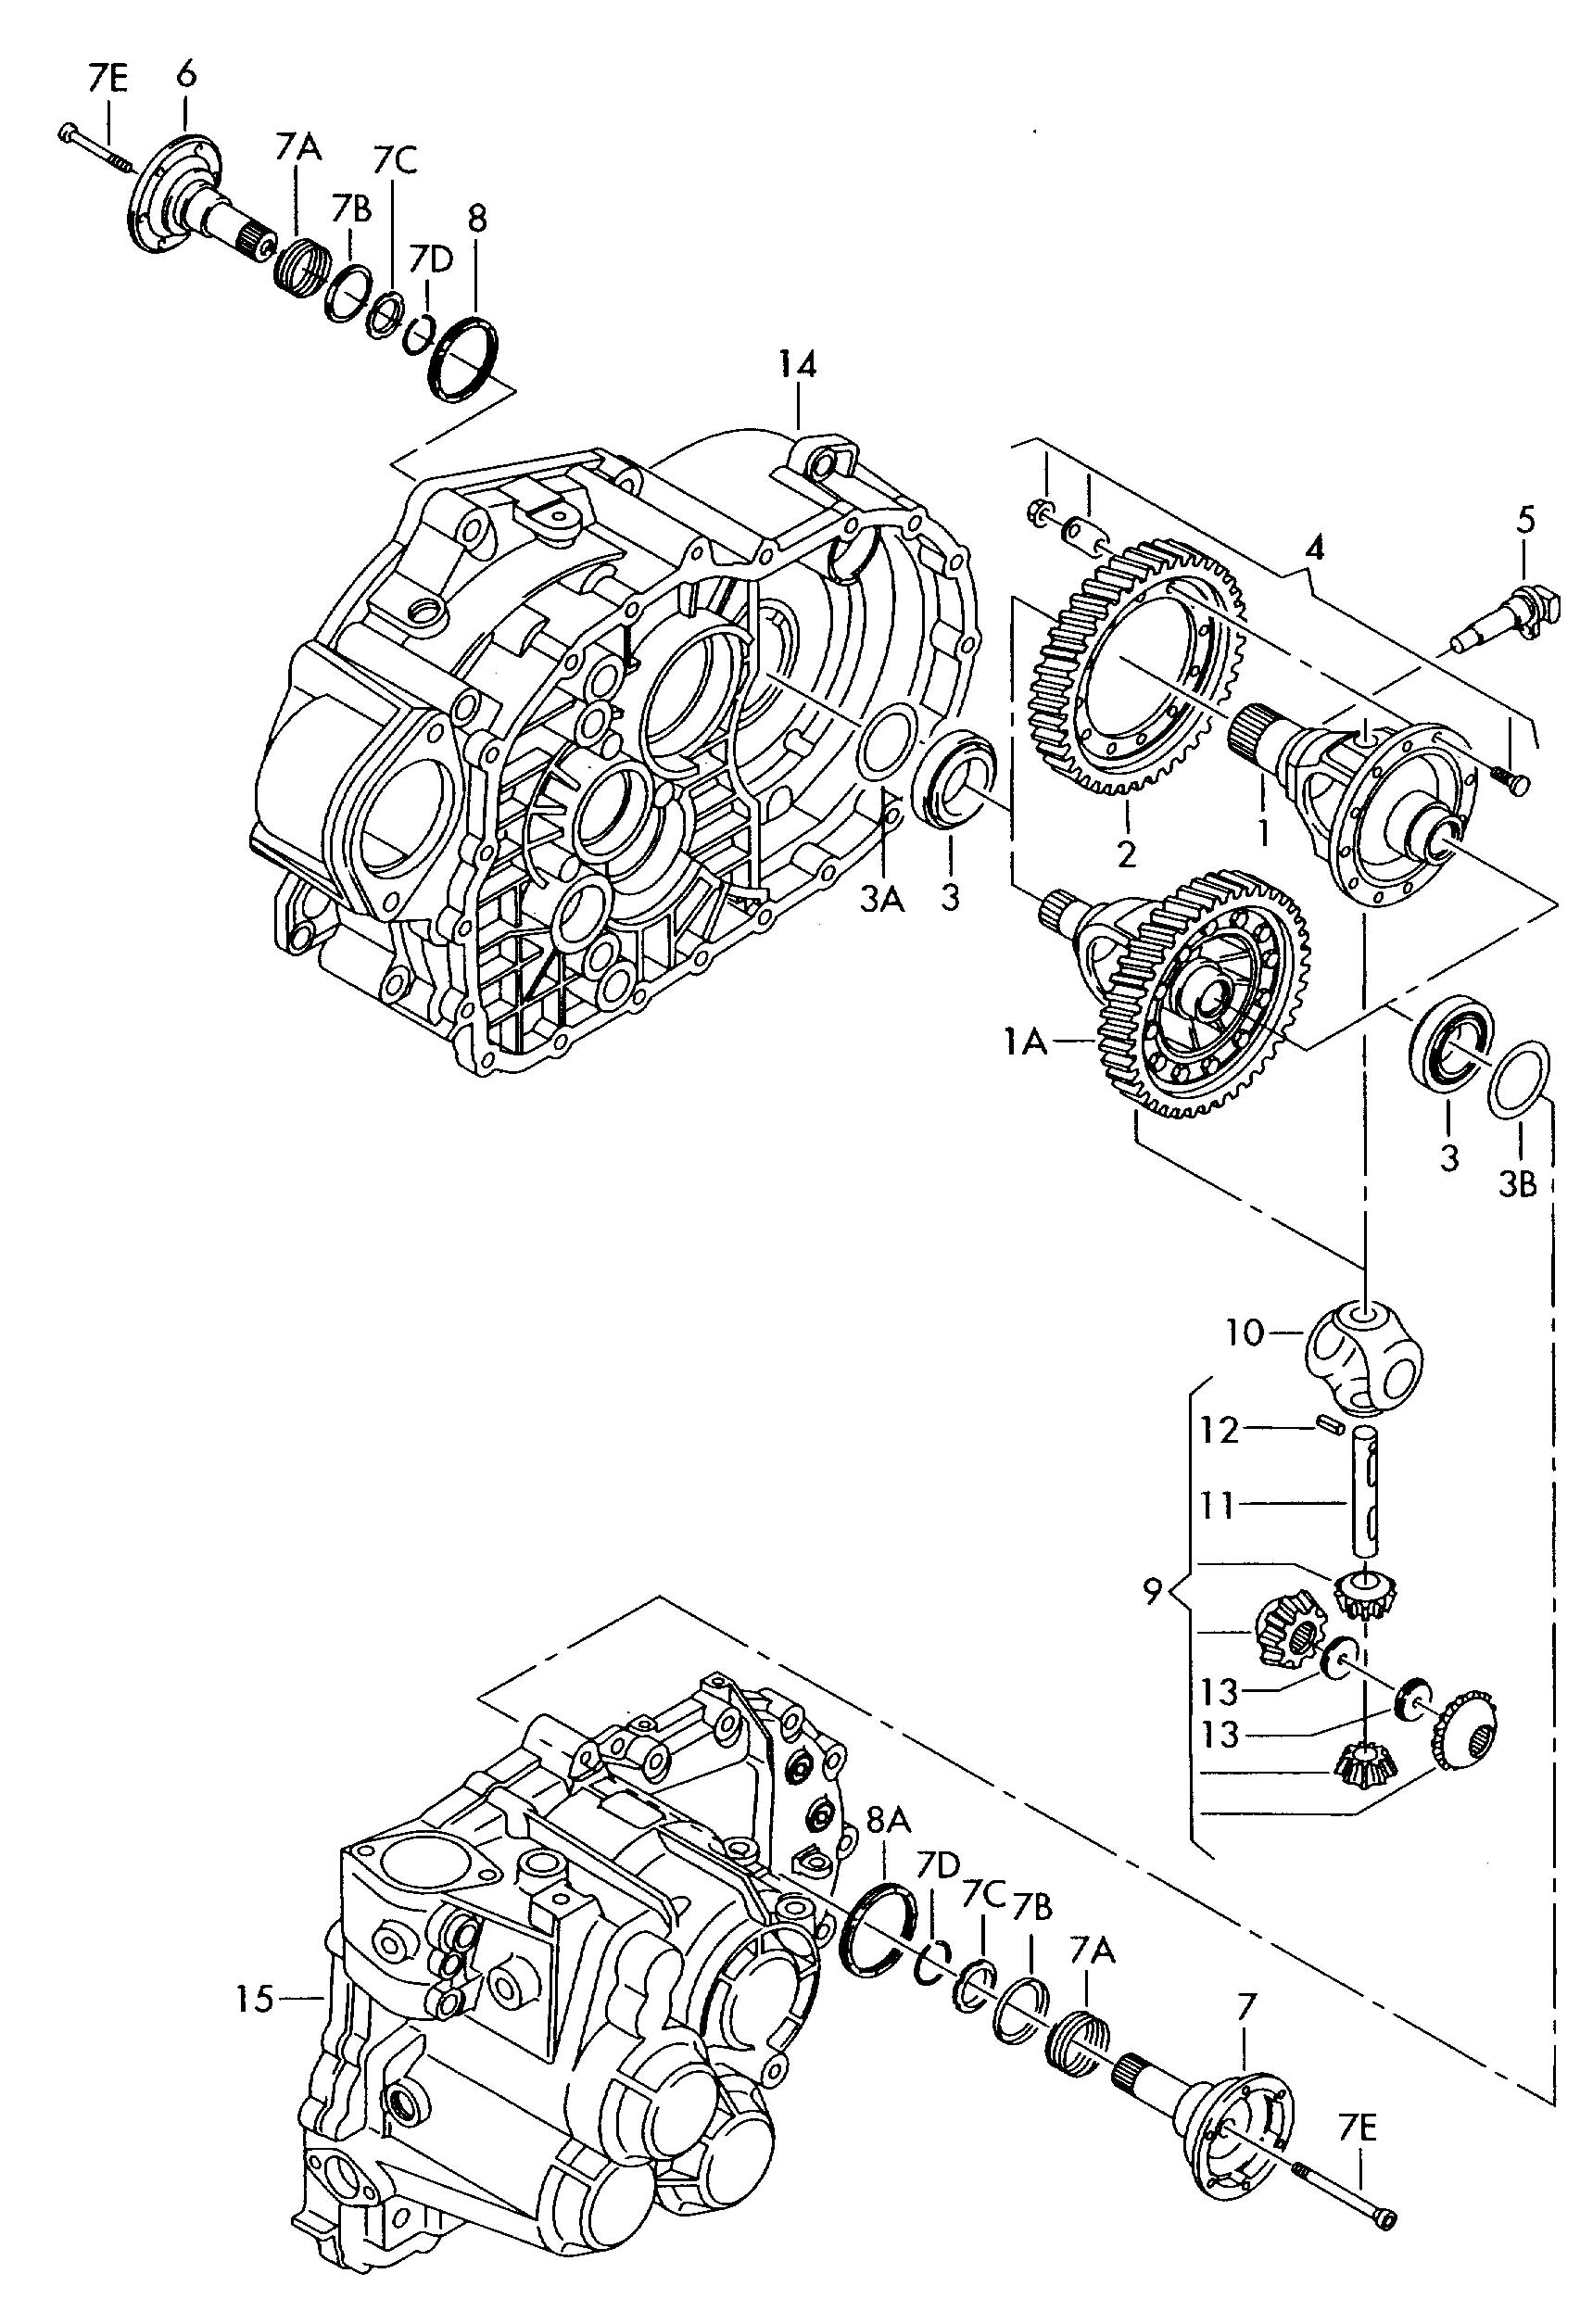 2004 ford f150 transmission diagram trail tech vapour wiring water temp sensor location get free